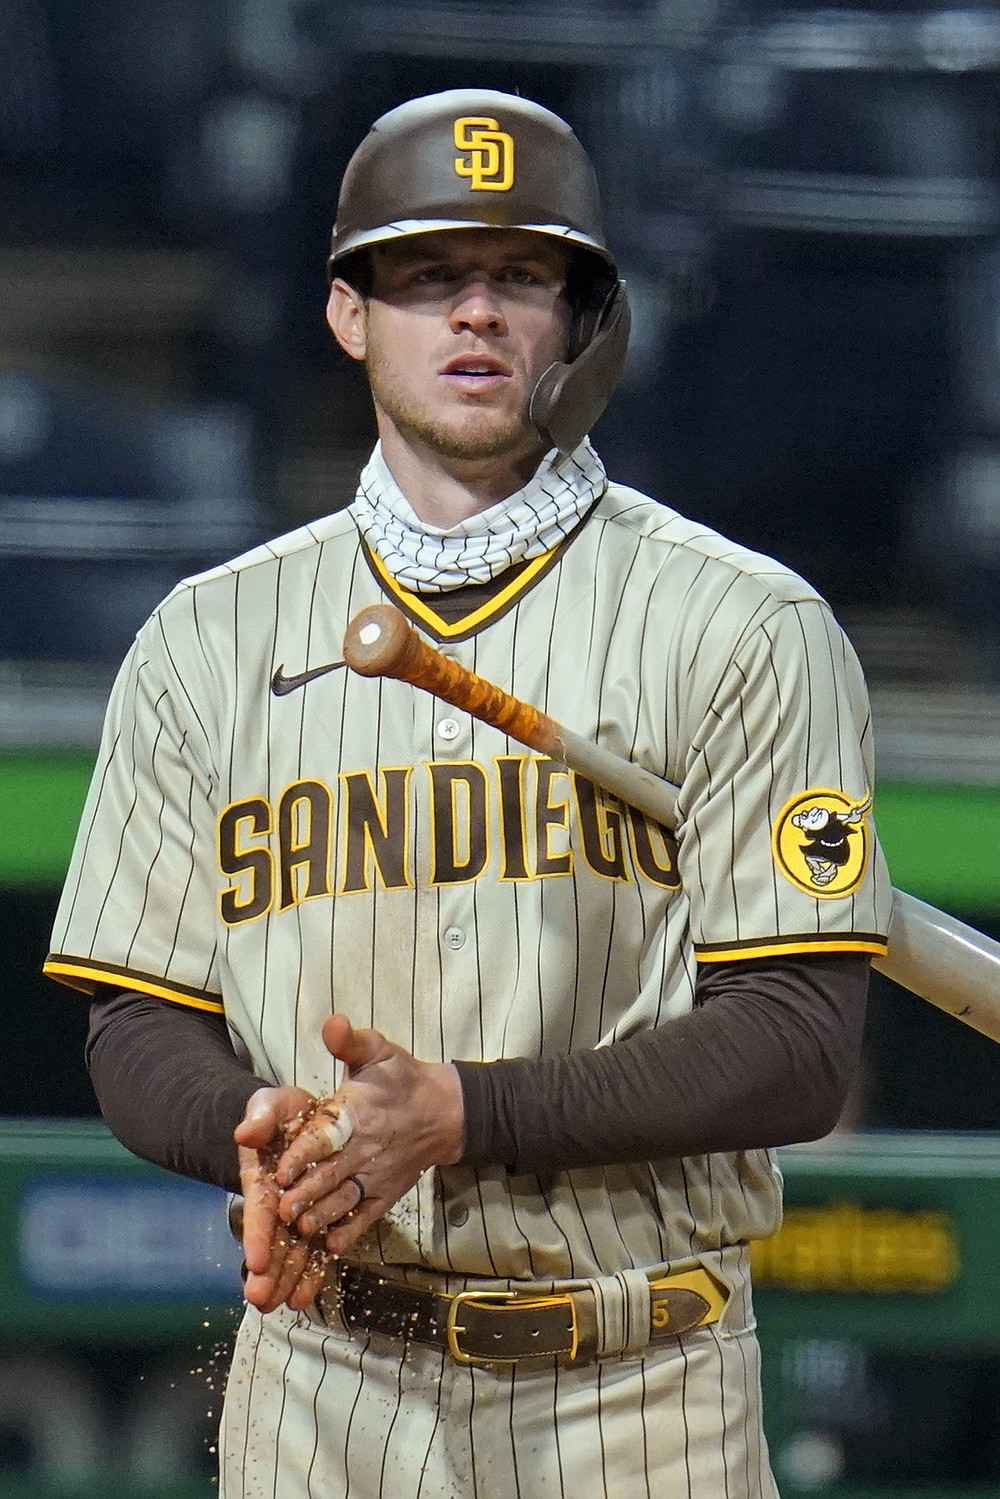 San Diego Padres' Wil Myers rubs dirt on his hands between pitches during an at-bat in the seventh inning against Pittsburgh Pirates starting pitcher Luis Oviedo during a baseball game in Pittsburgh, Monday, April 12, 2021. Myers singled off Oviedo, driving in two runs. (AP Photo/Gene J. Puskar)